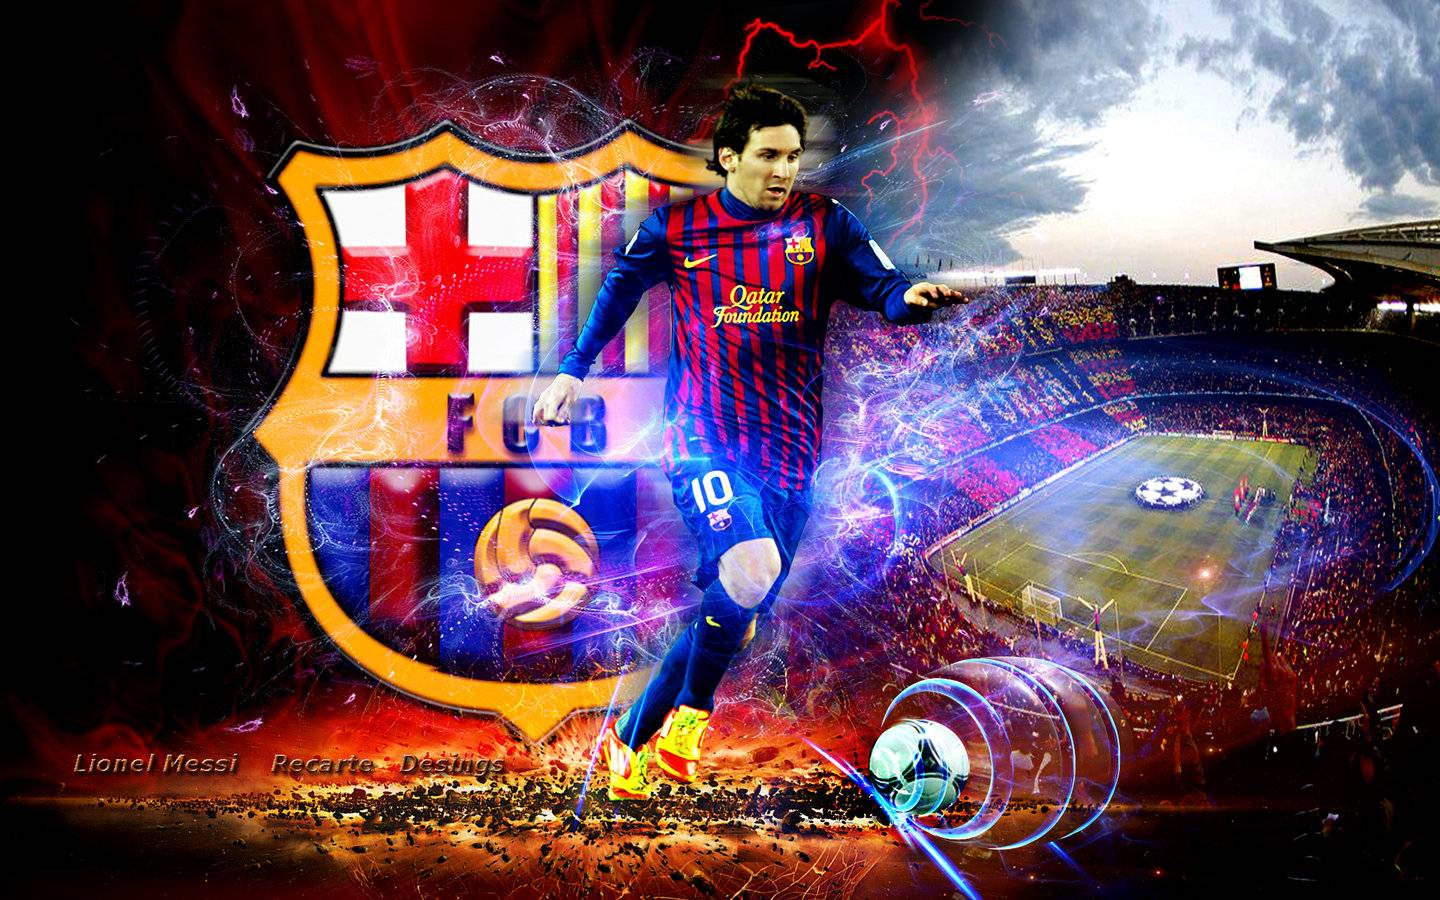 Lionel Messi Barcelona Fc Wallpaper All Wallpapers , HD Wallpaper & Backgrounds